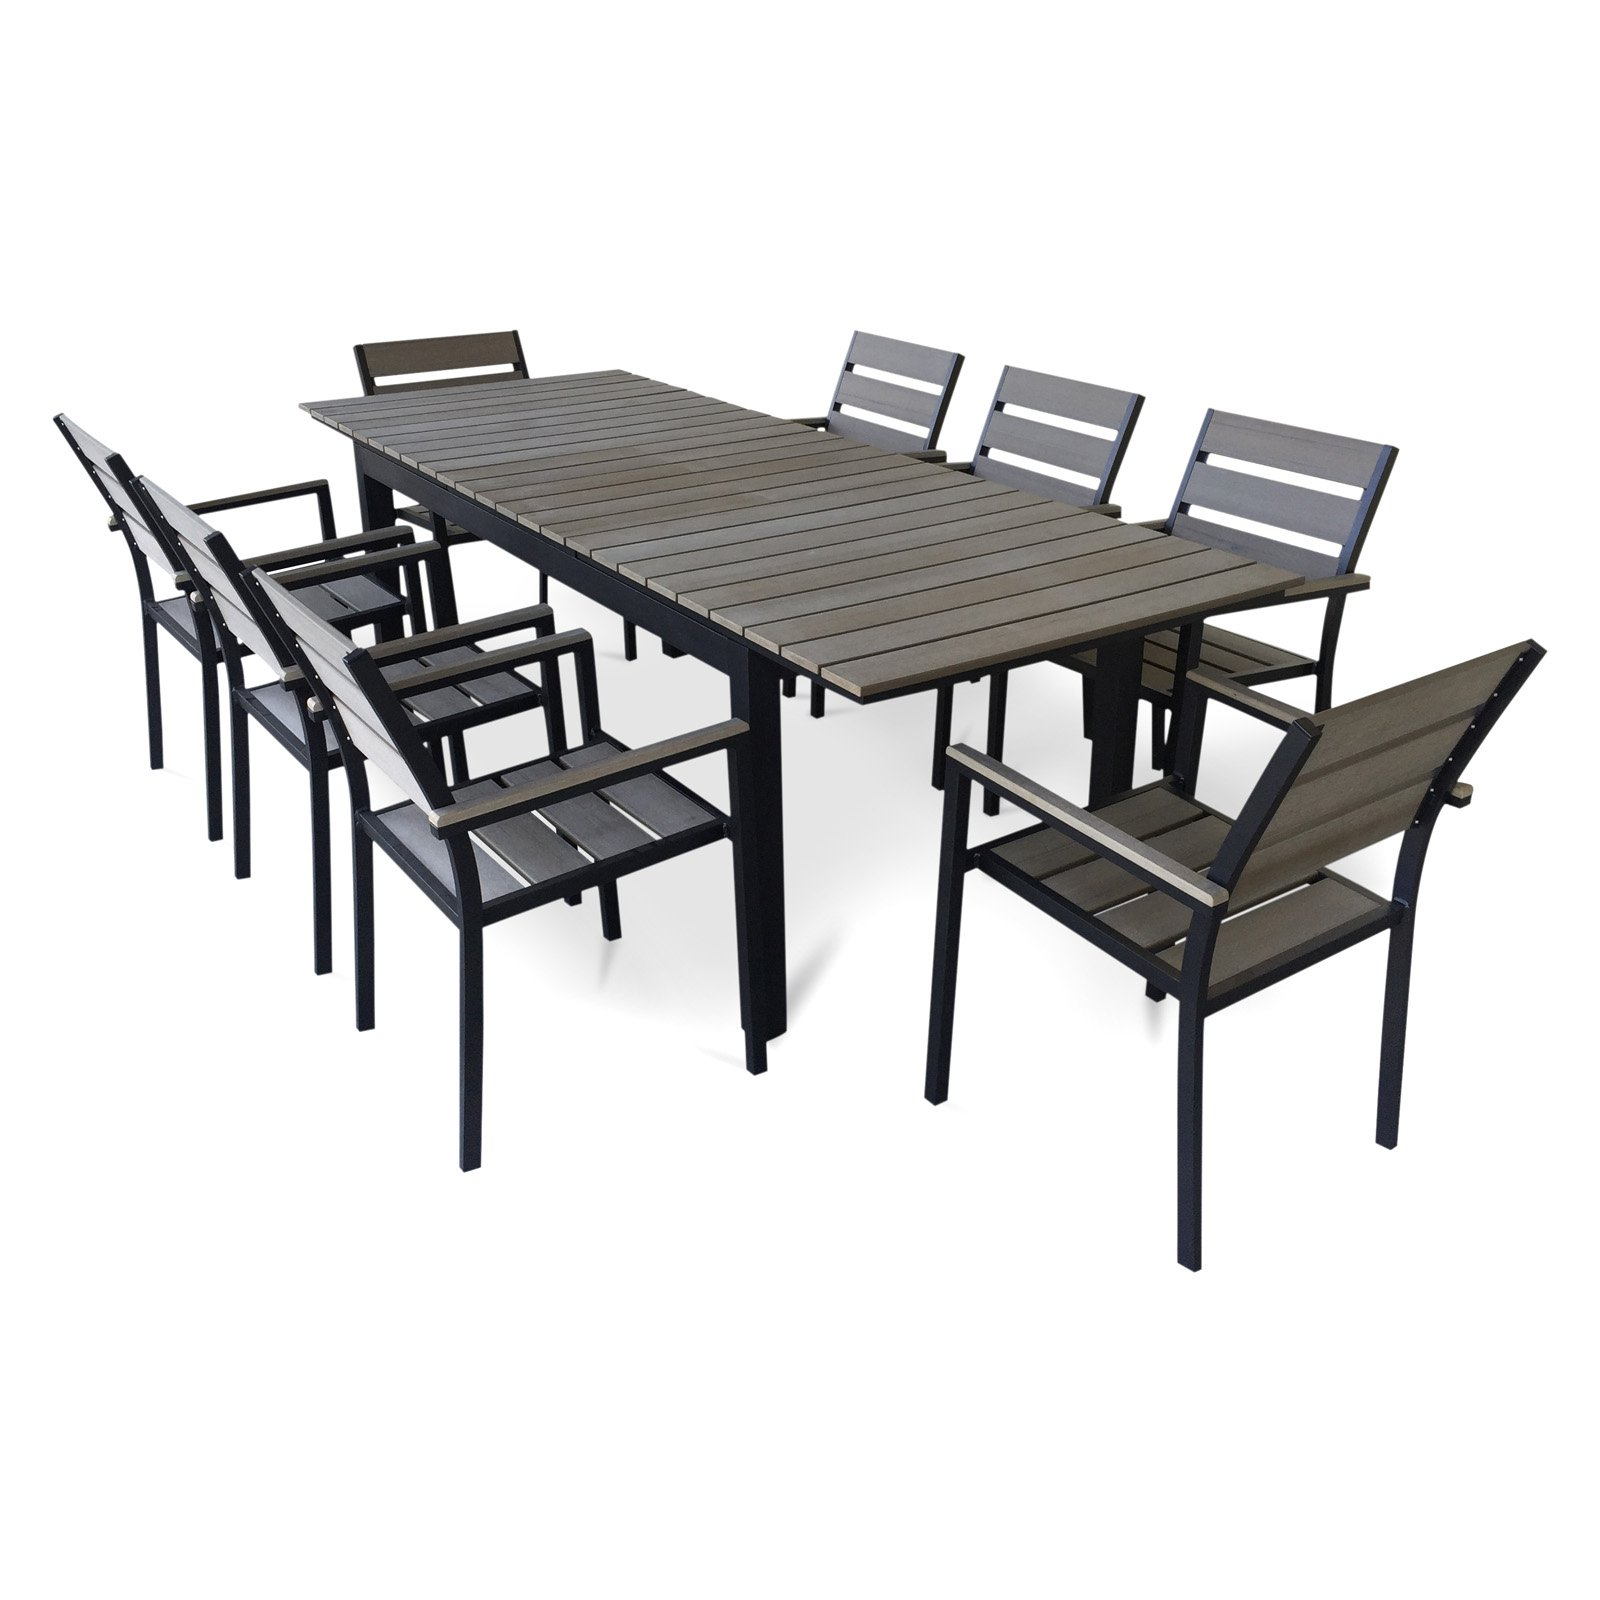 Urban Furnishing 9 Piece Eco-Wood Extendable Outdoor Patio Dining Set